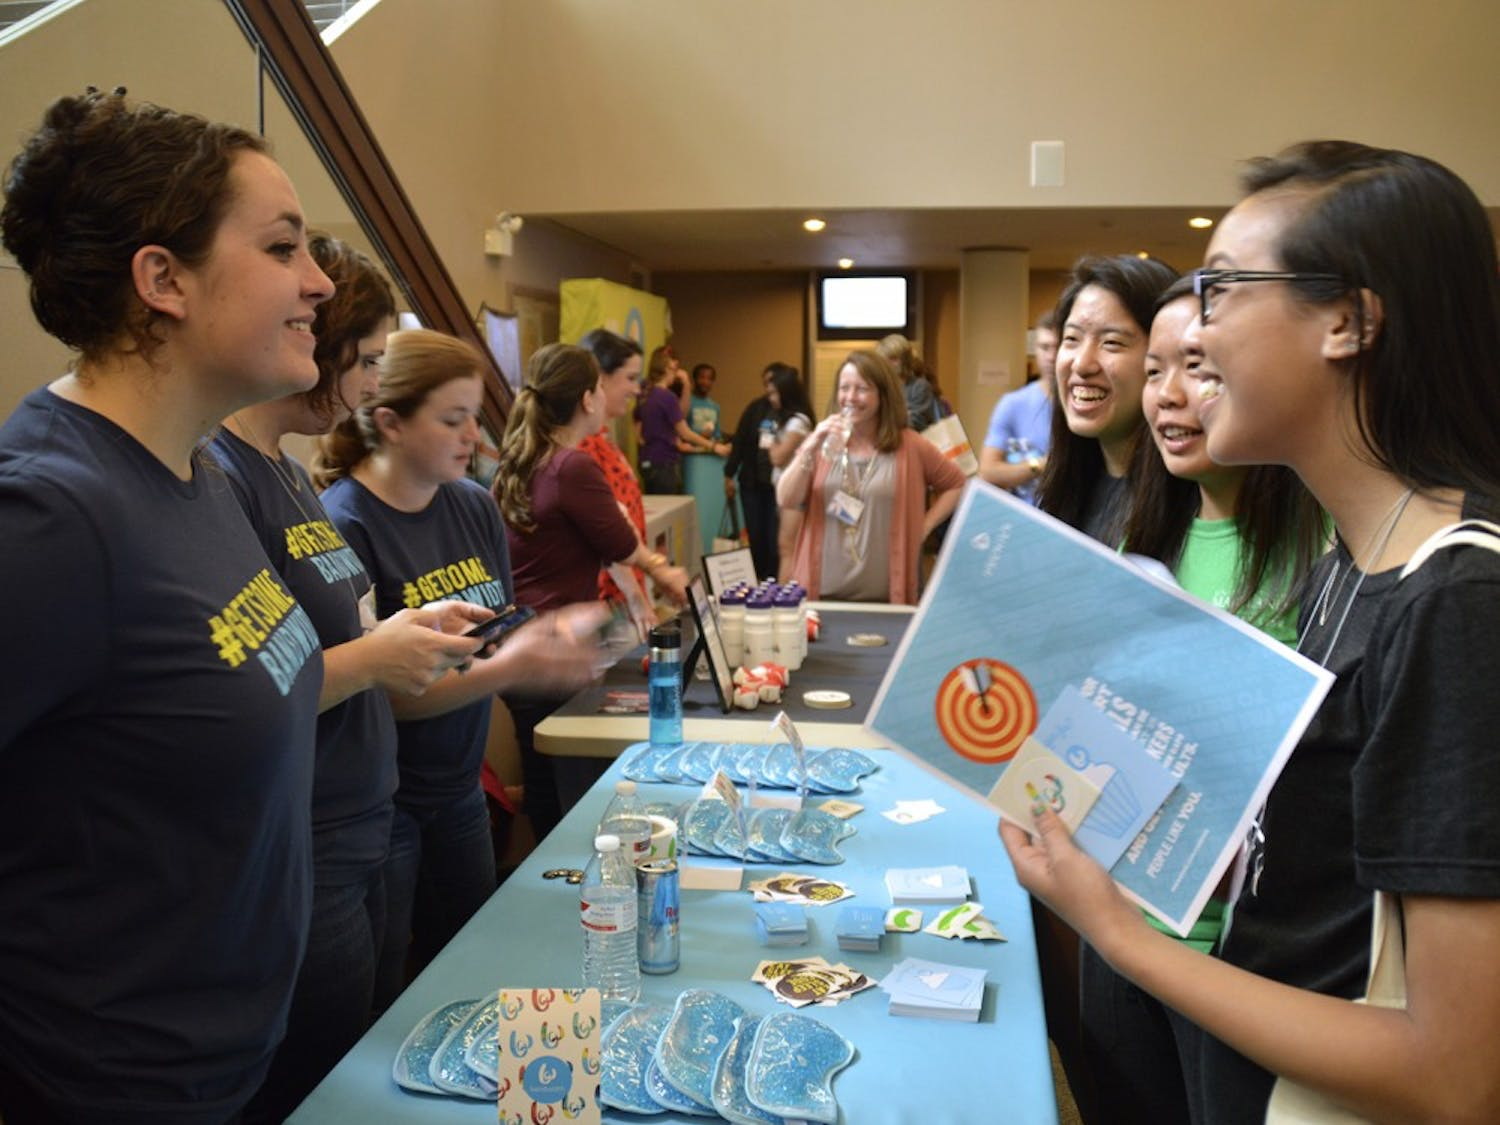 All-female hackathon aim towards creating an encouraging environment for women of all skill levels to pursue their interests in technology. 